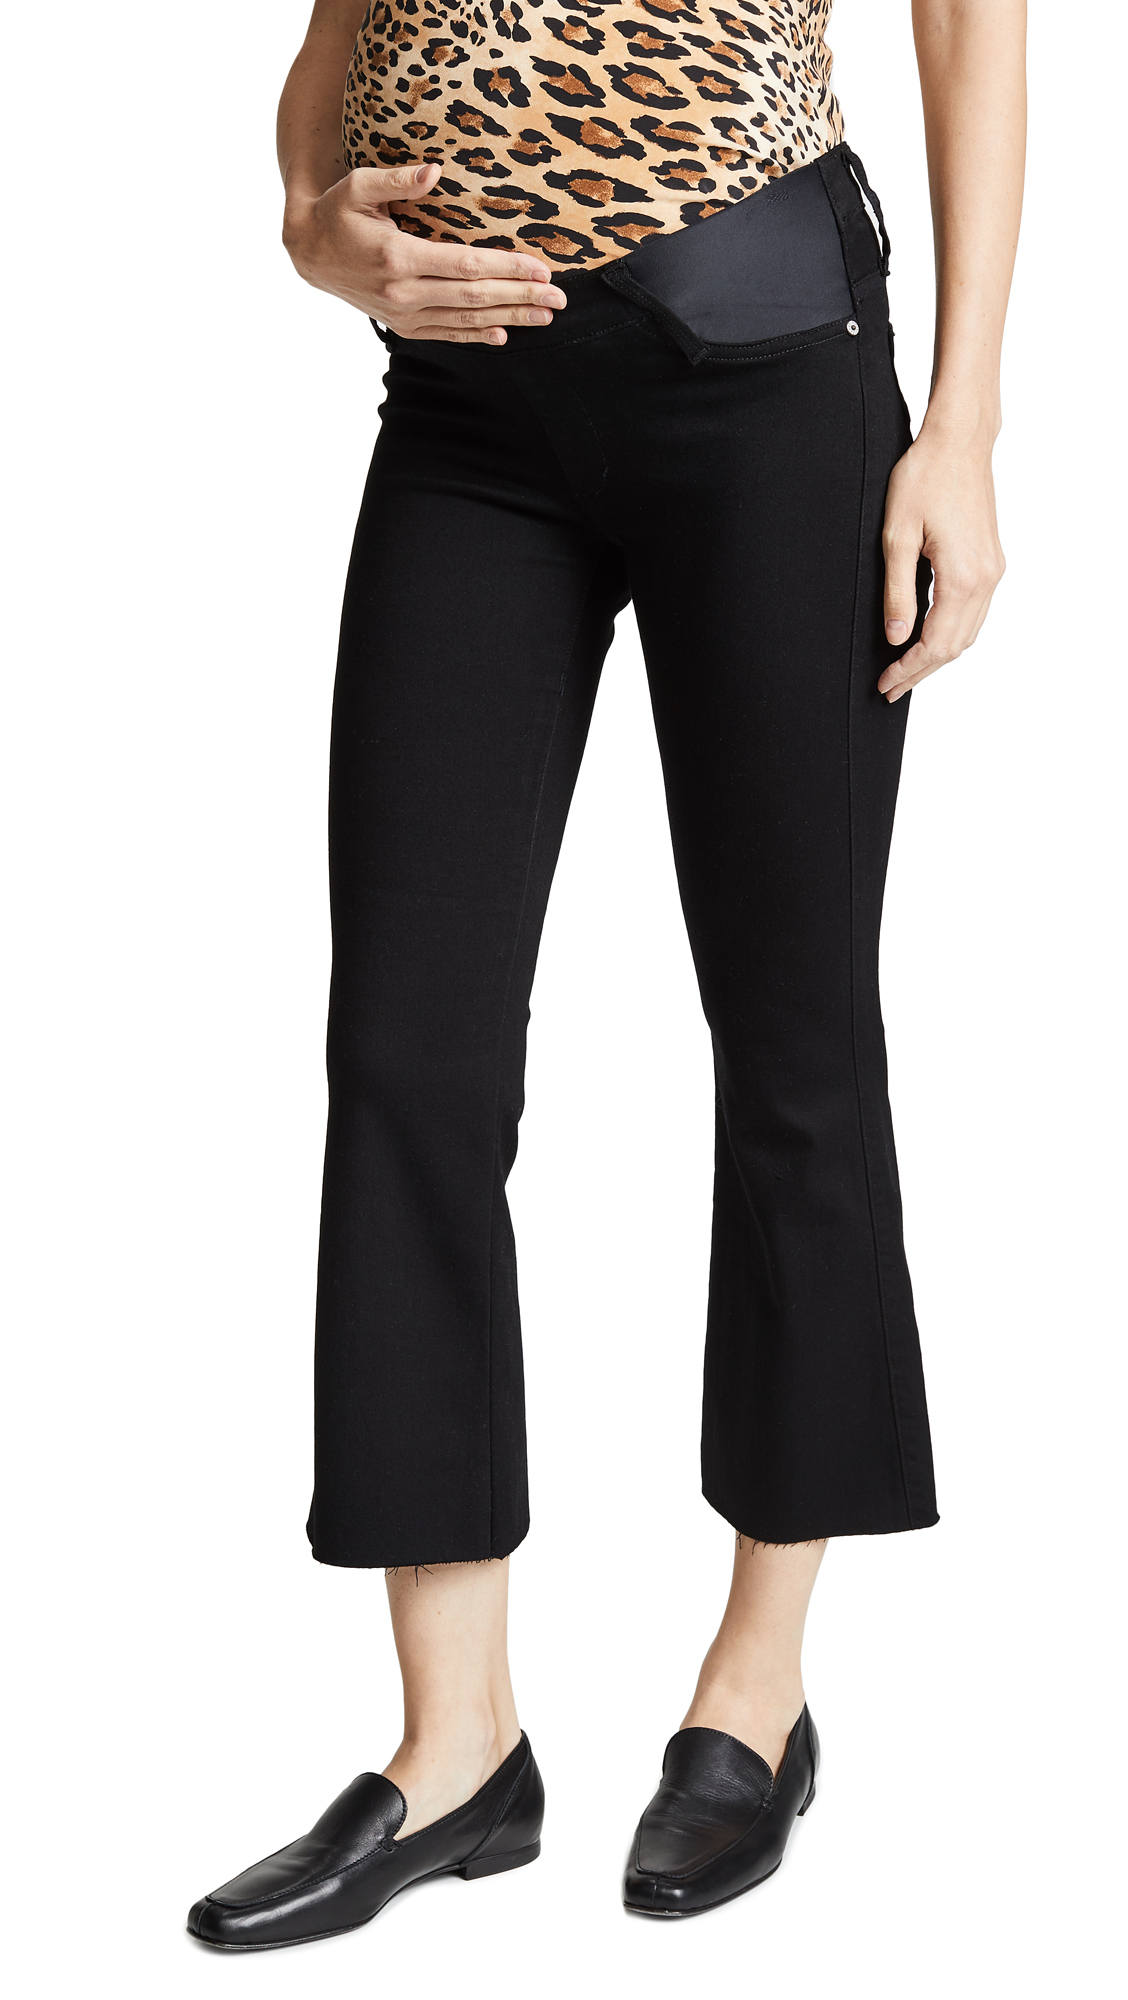 James Jeans Kalista Maternity Cropped Flare Jeans In Black Swan